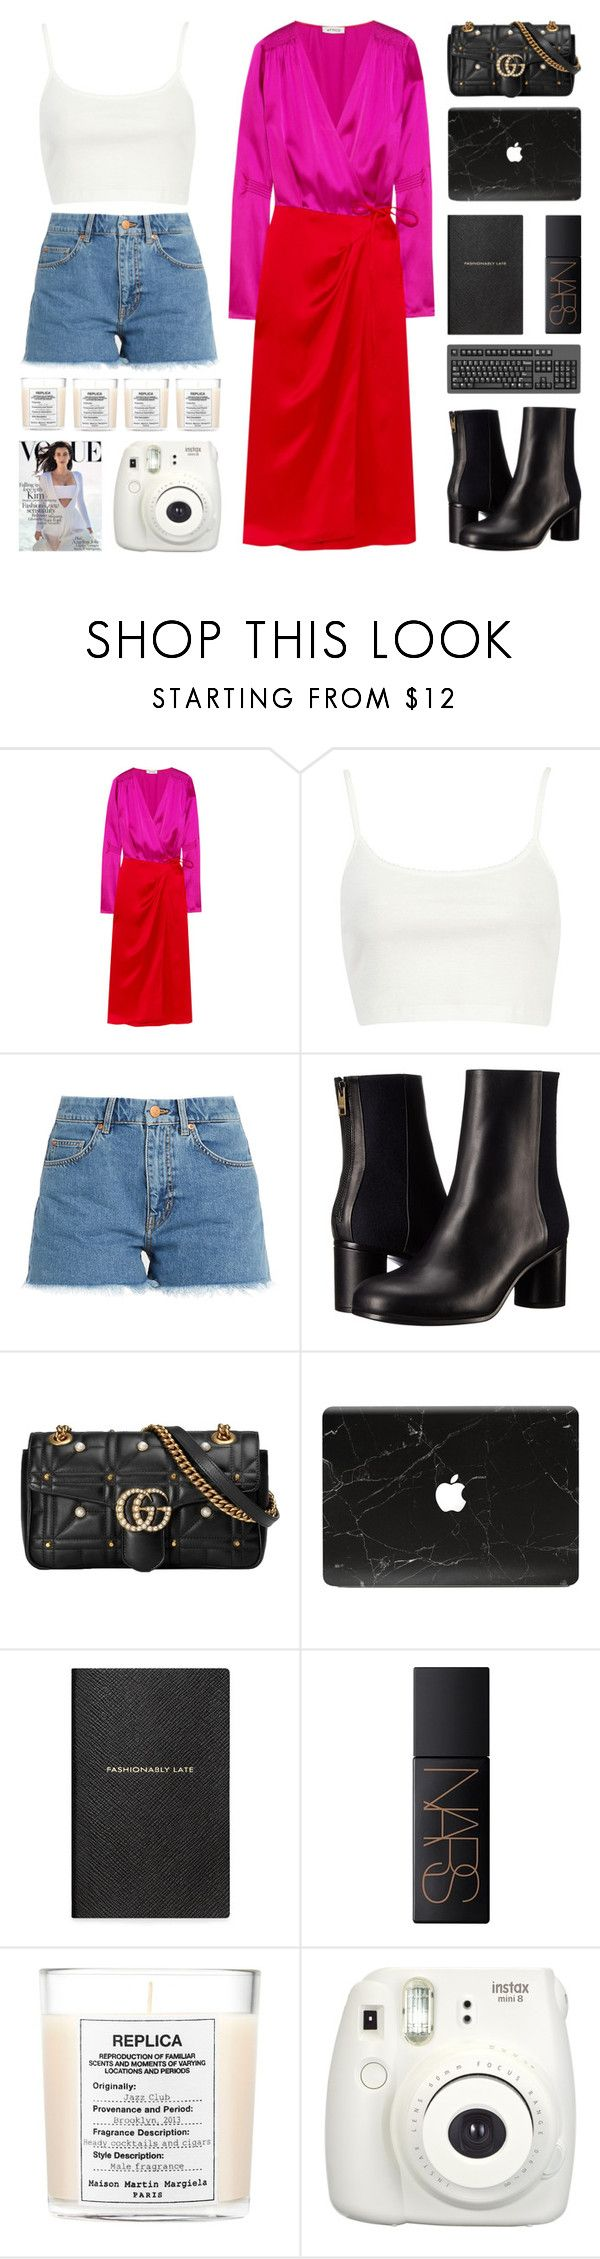 """""""Summer Trend : Wrap dress"""" by igedesubawa ❤ liked on Polyvore featuring Attico, River Island, M.i.h Jeans, Paul Smith, Gucci, Smythson, NARS Cosmetics, Maison Margiela, Fujifilm and contest"""